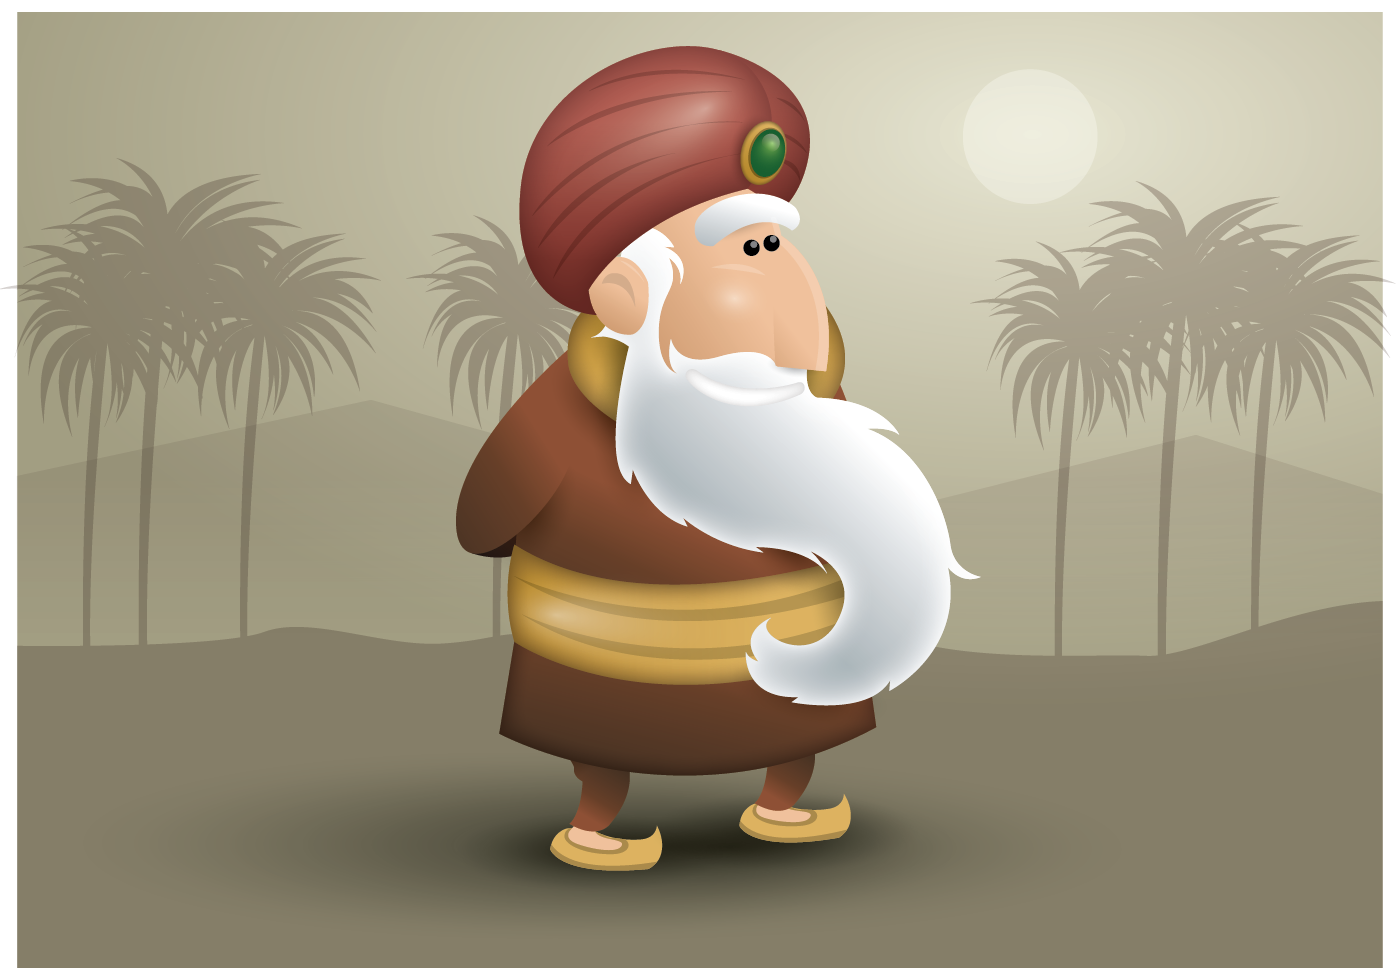 sultan character vector download free vector art stock